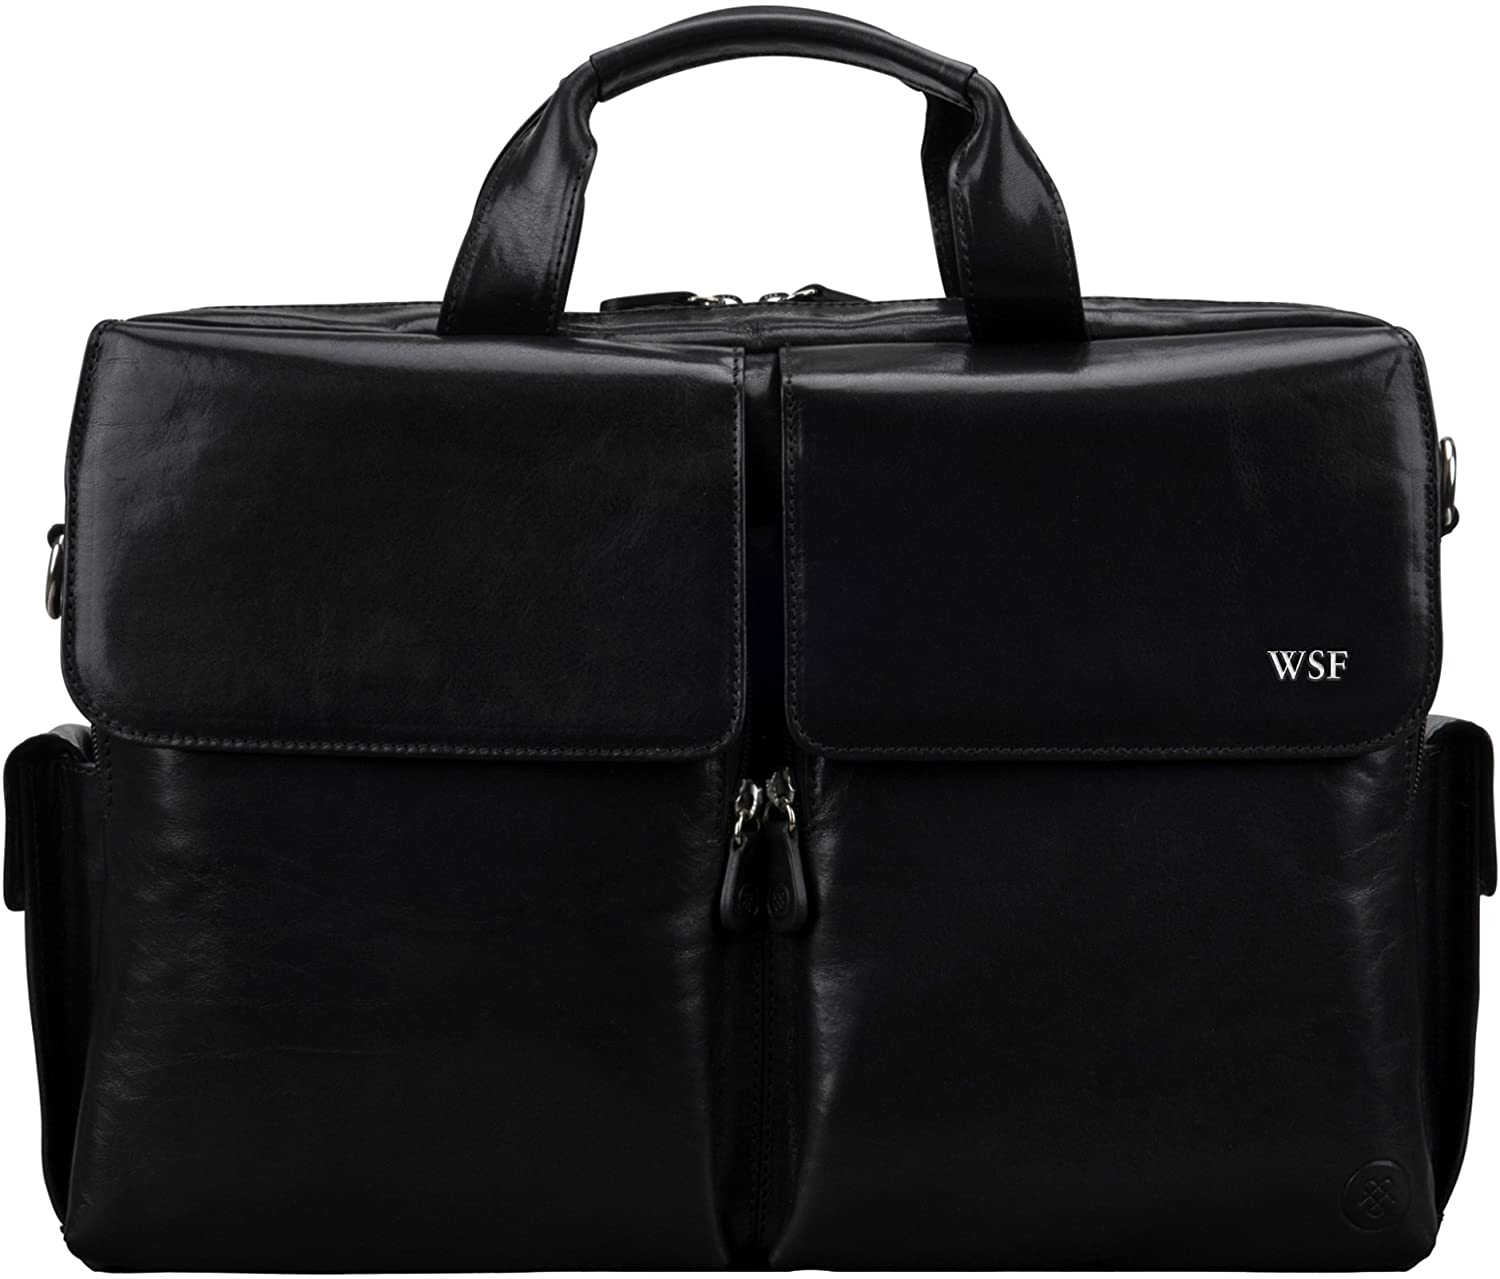 Maxwell Scott Personalized Men's Real Italian Leather Briefcase - Lagaro Black